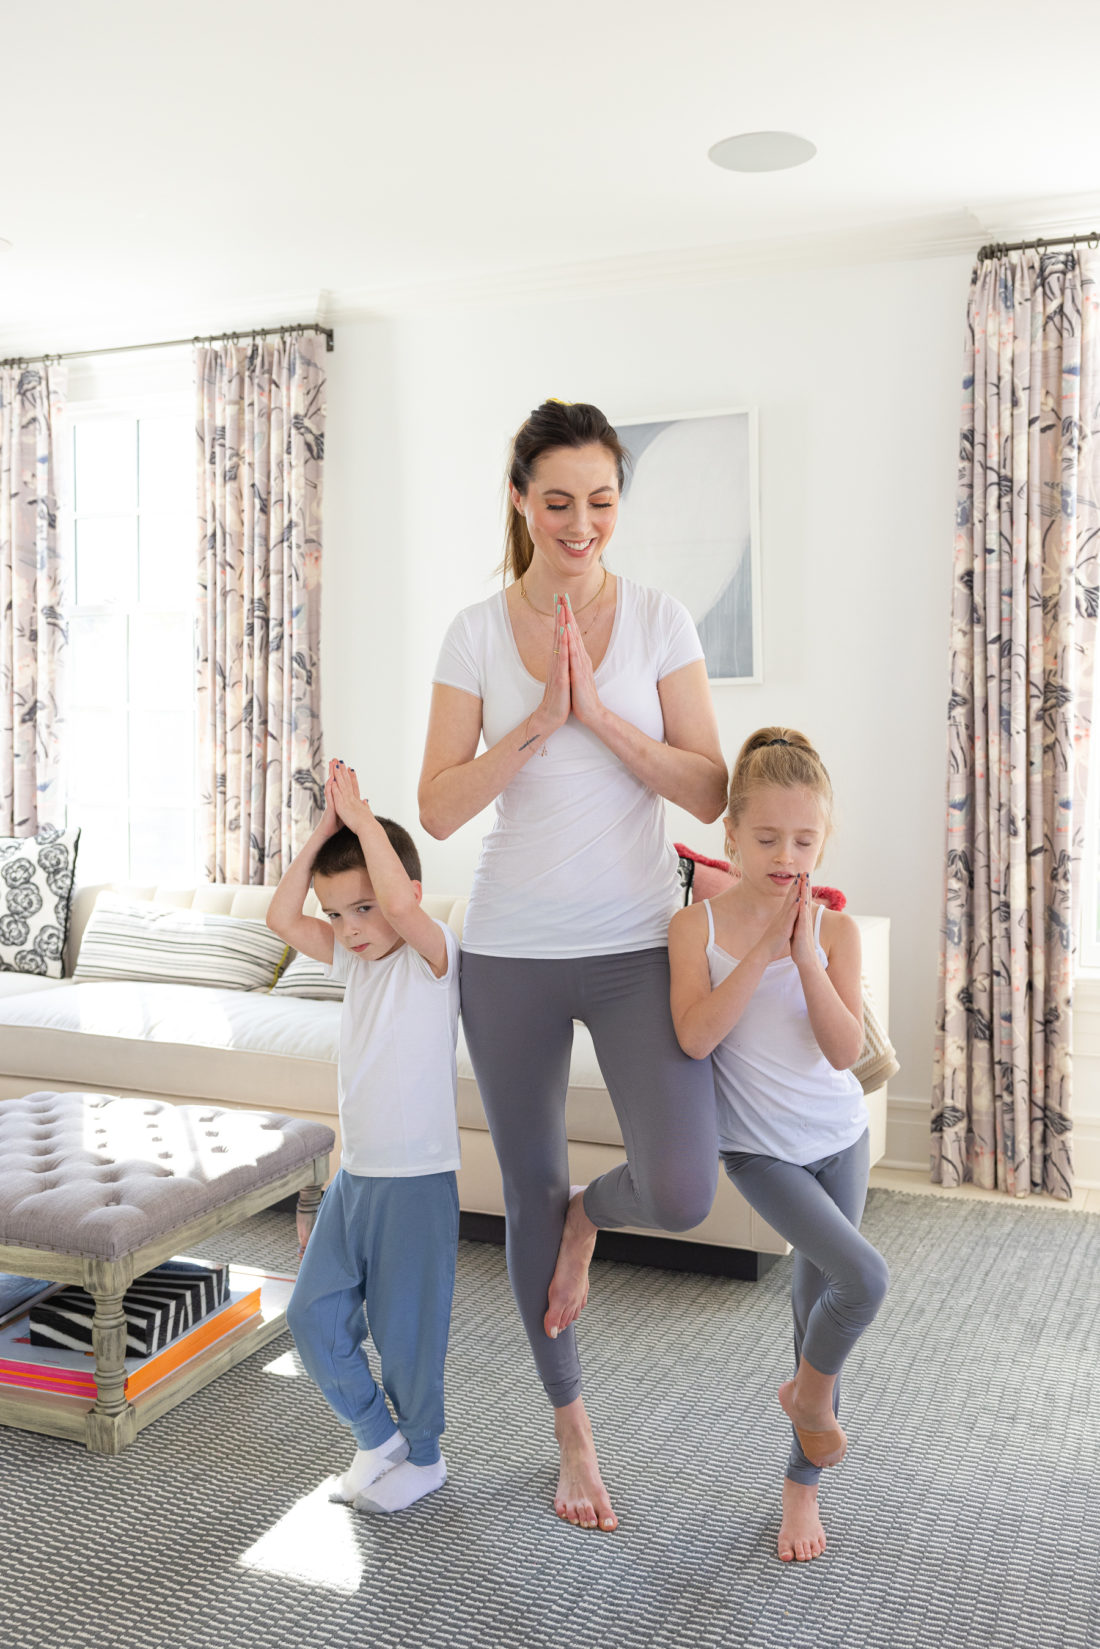 Eva Amurri shares some Spring Fitness Challenges to Keep Kids Active